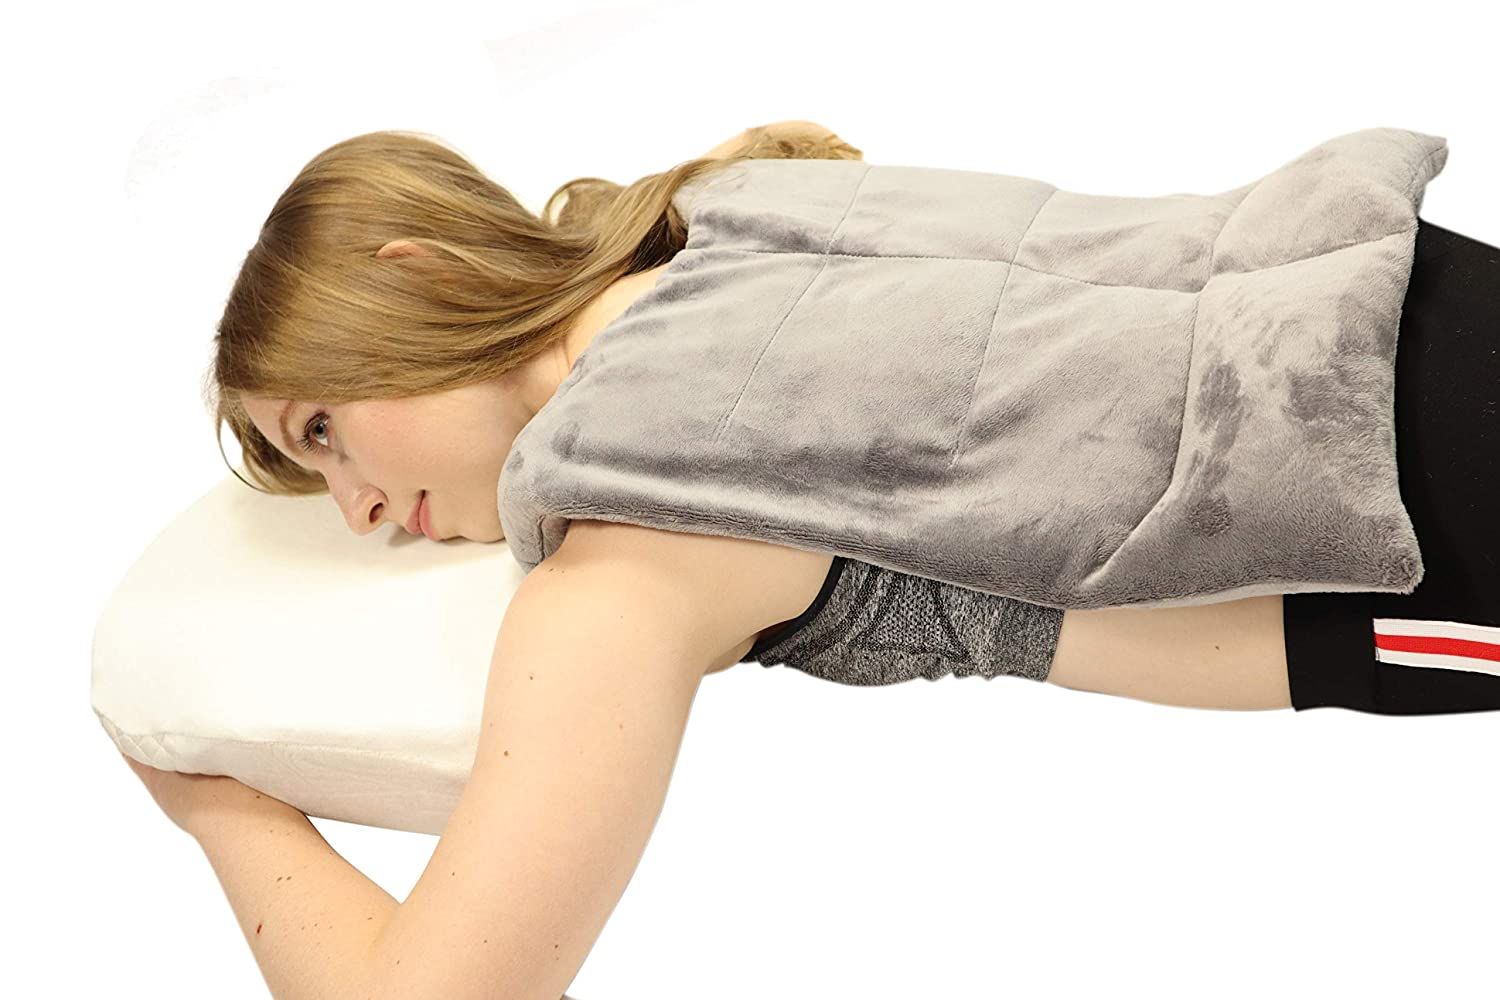 Heated Microwaveable Back Wrap - Herbal Hot/Cold Deep Penetrating Herbal Aromatherapy